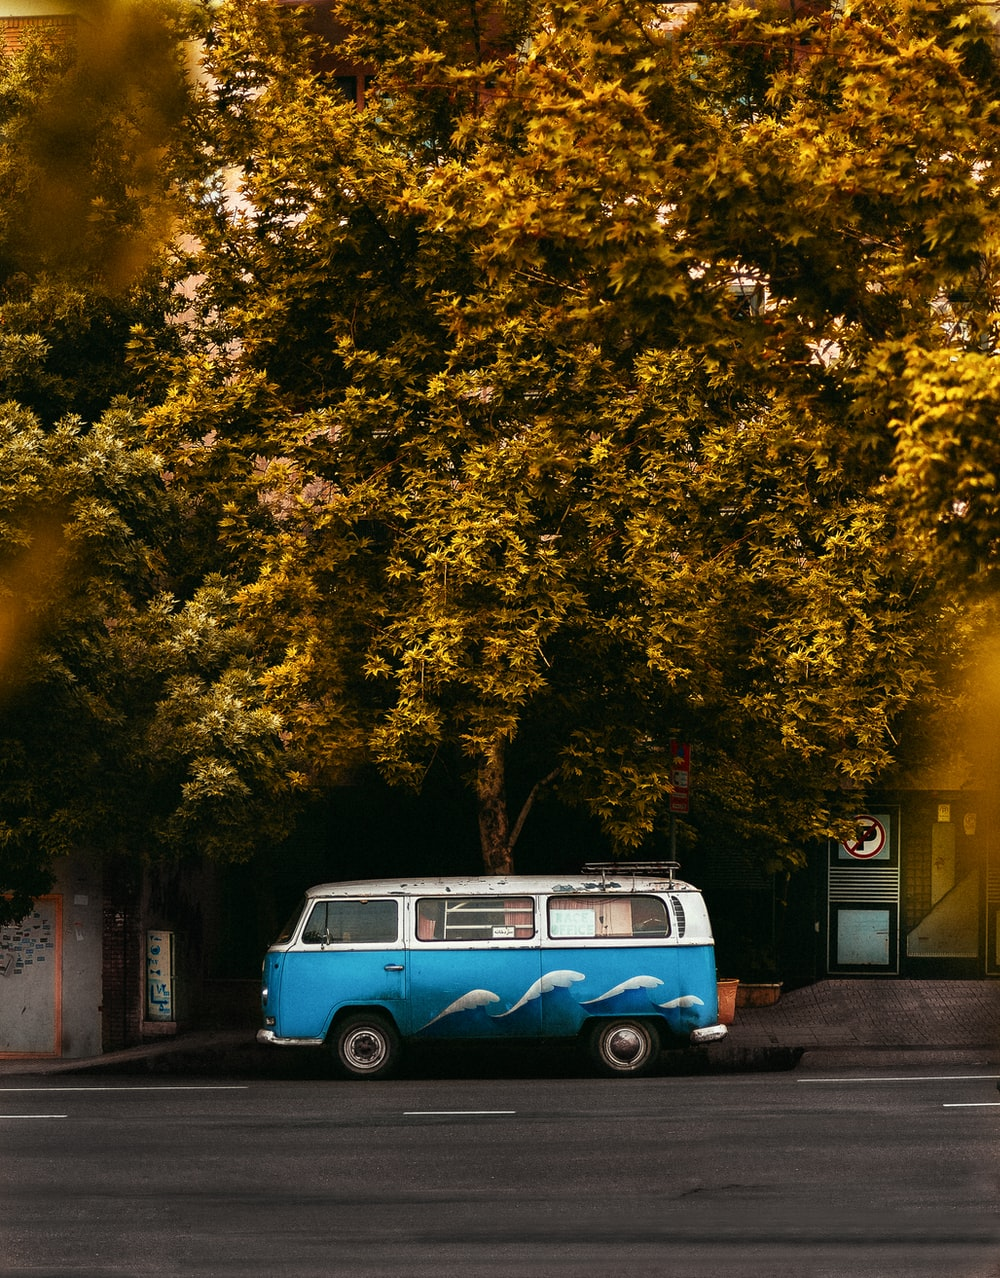 blue and white volkswagen t-2 parked beside green trees during daytime